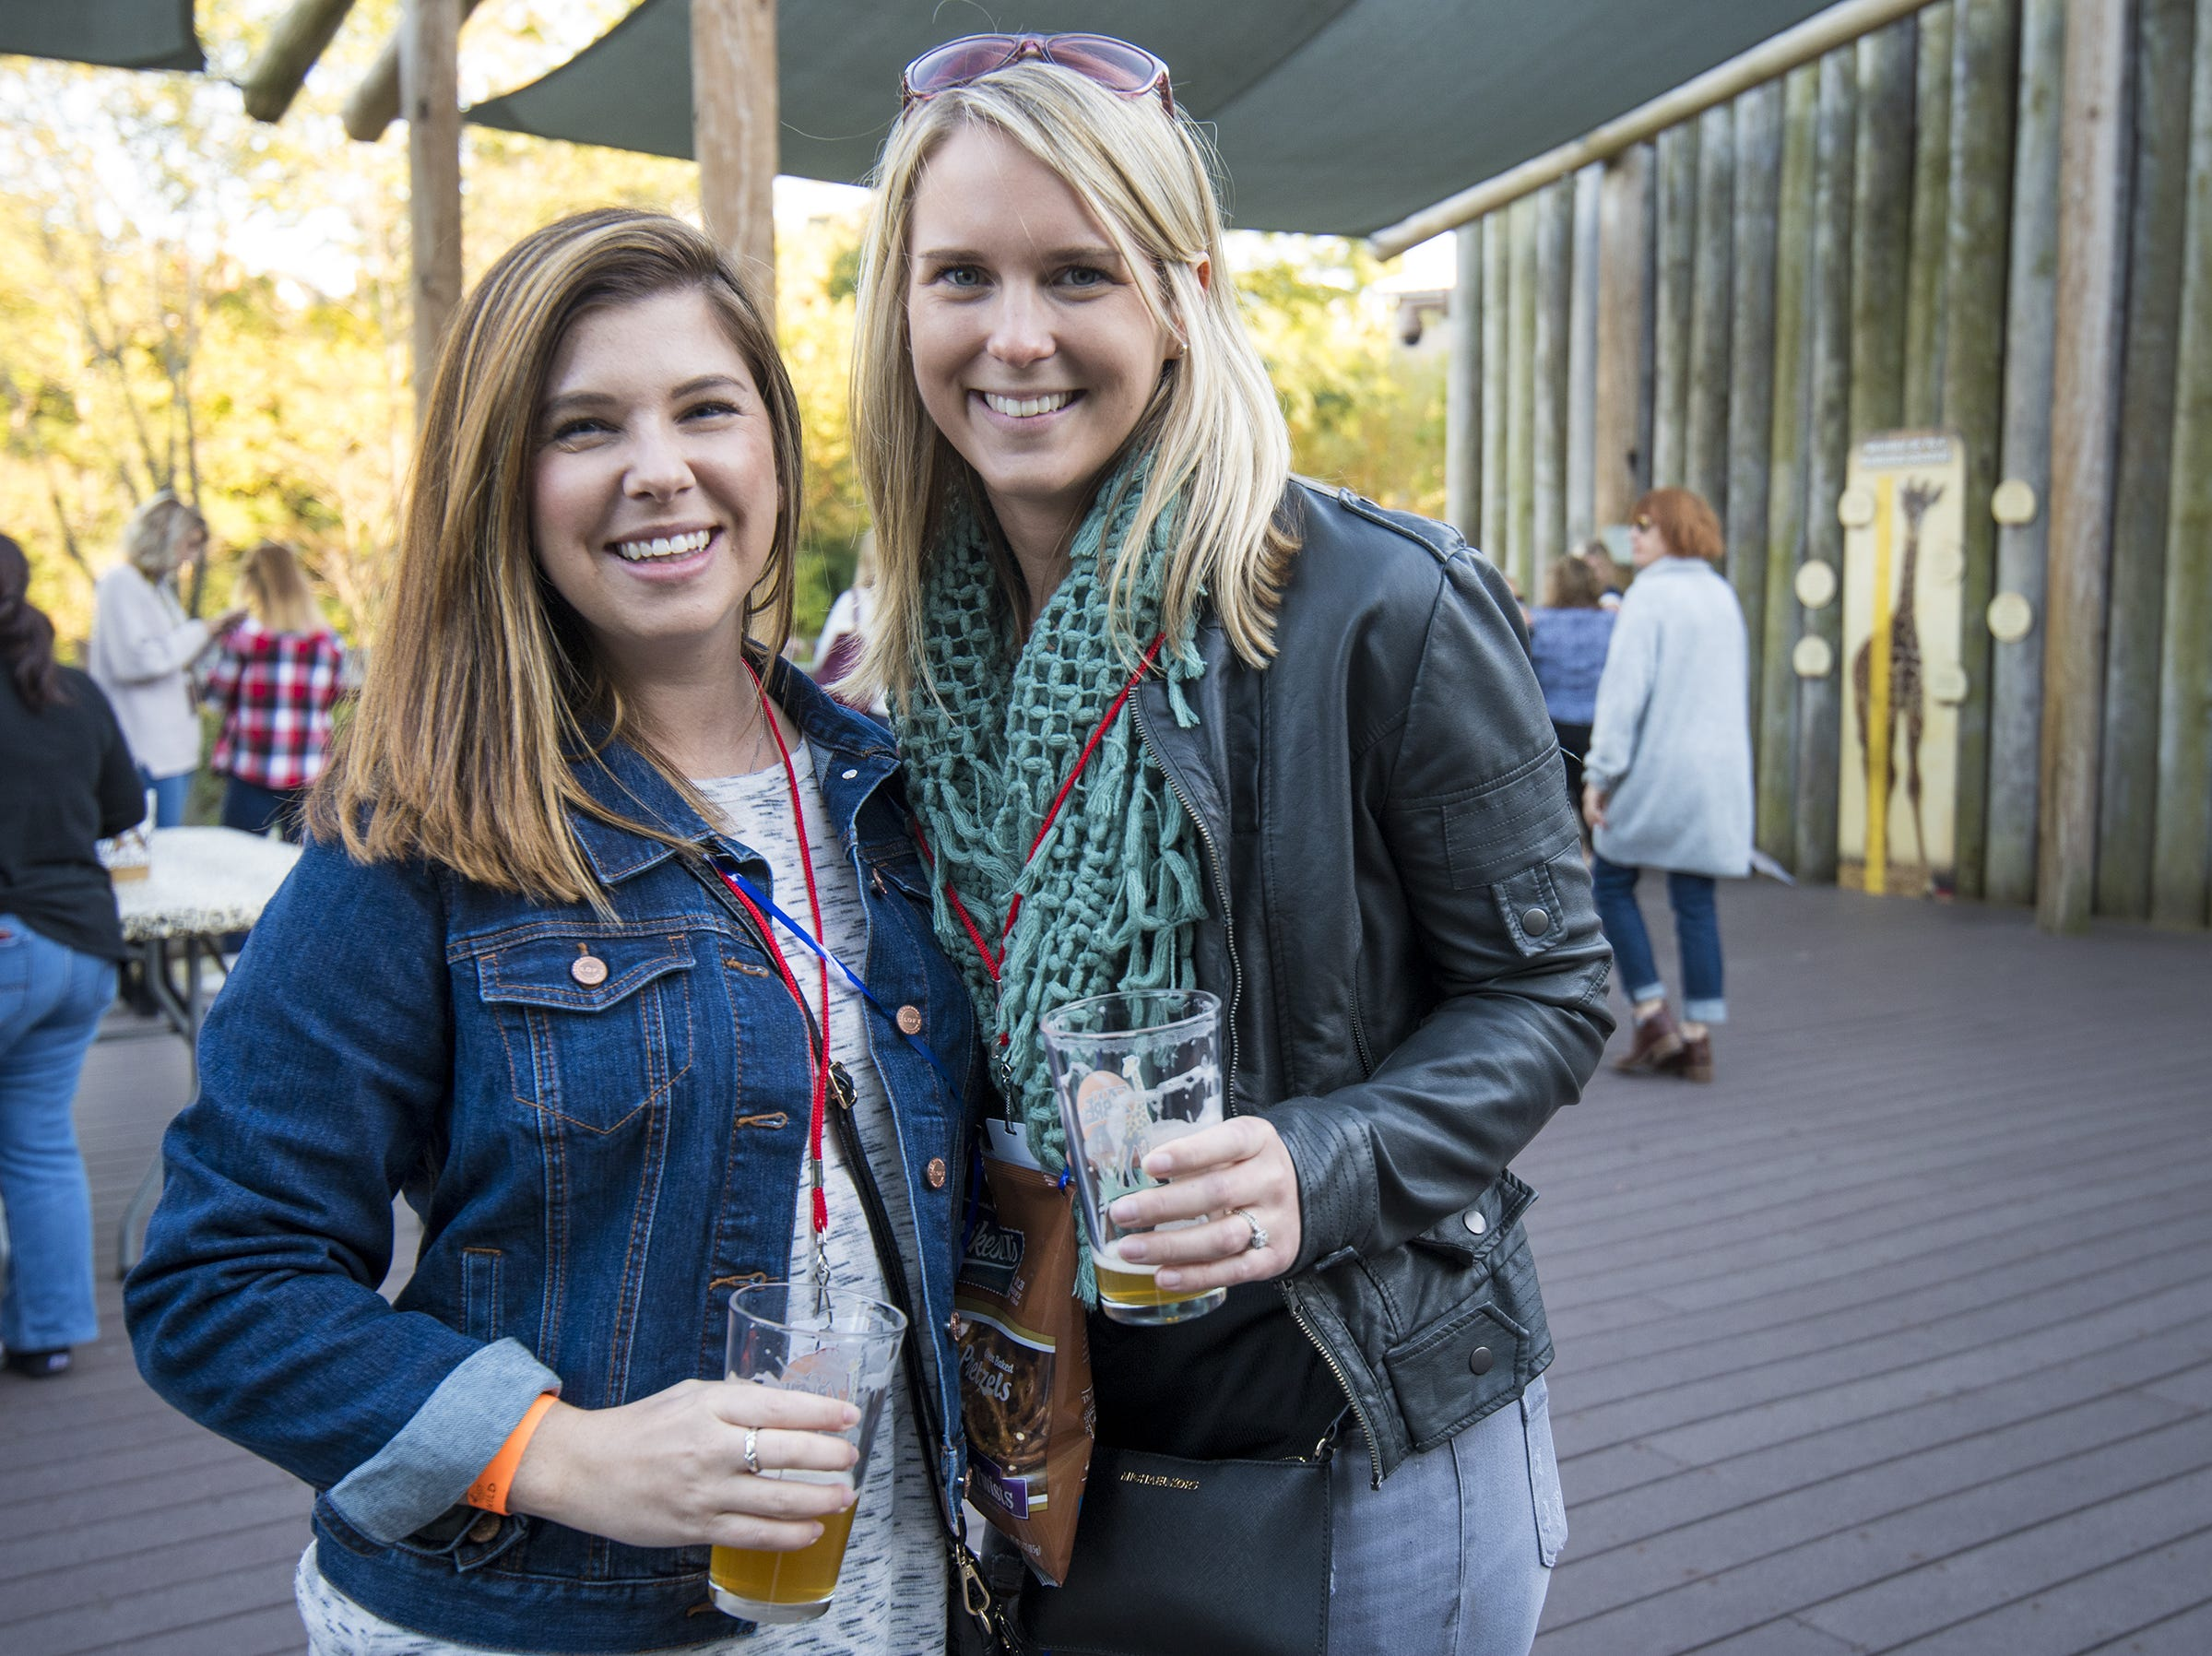 Amanda Schellenberger and Lindsay Dorsino attend Zoo Brew.